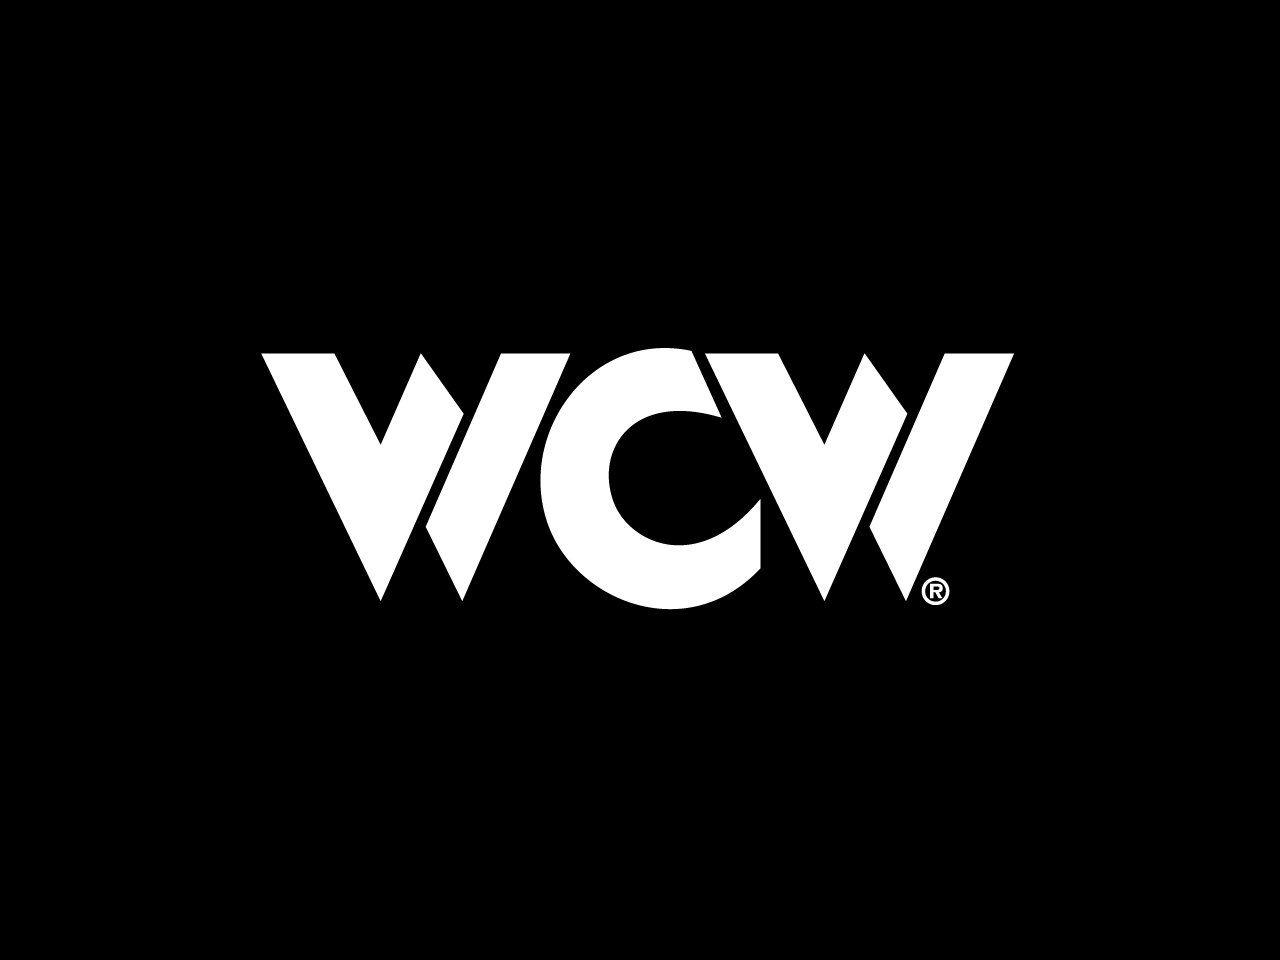 1280x960 - Wcw Wallpapers 4